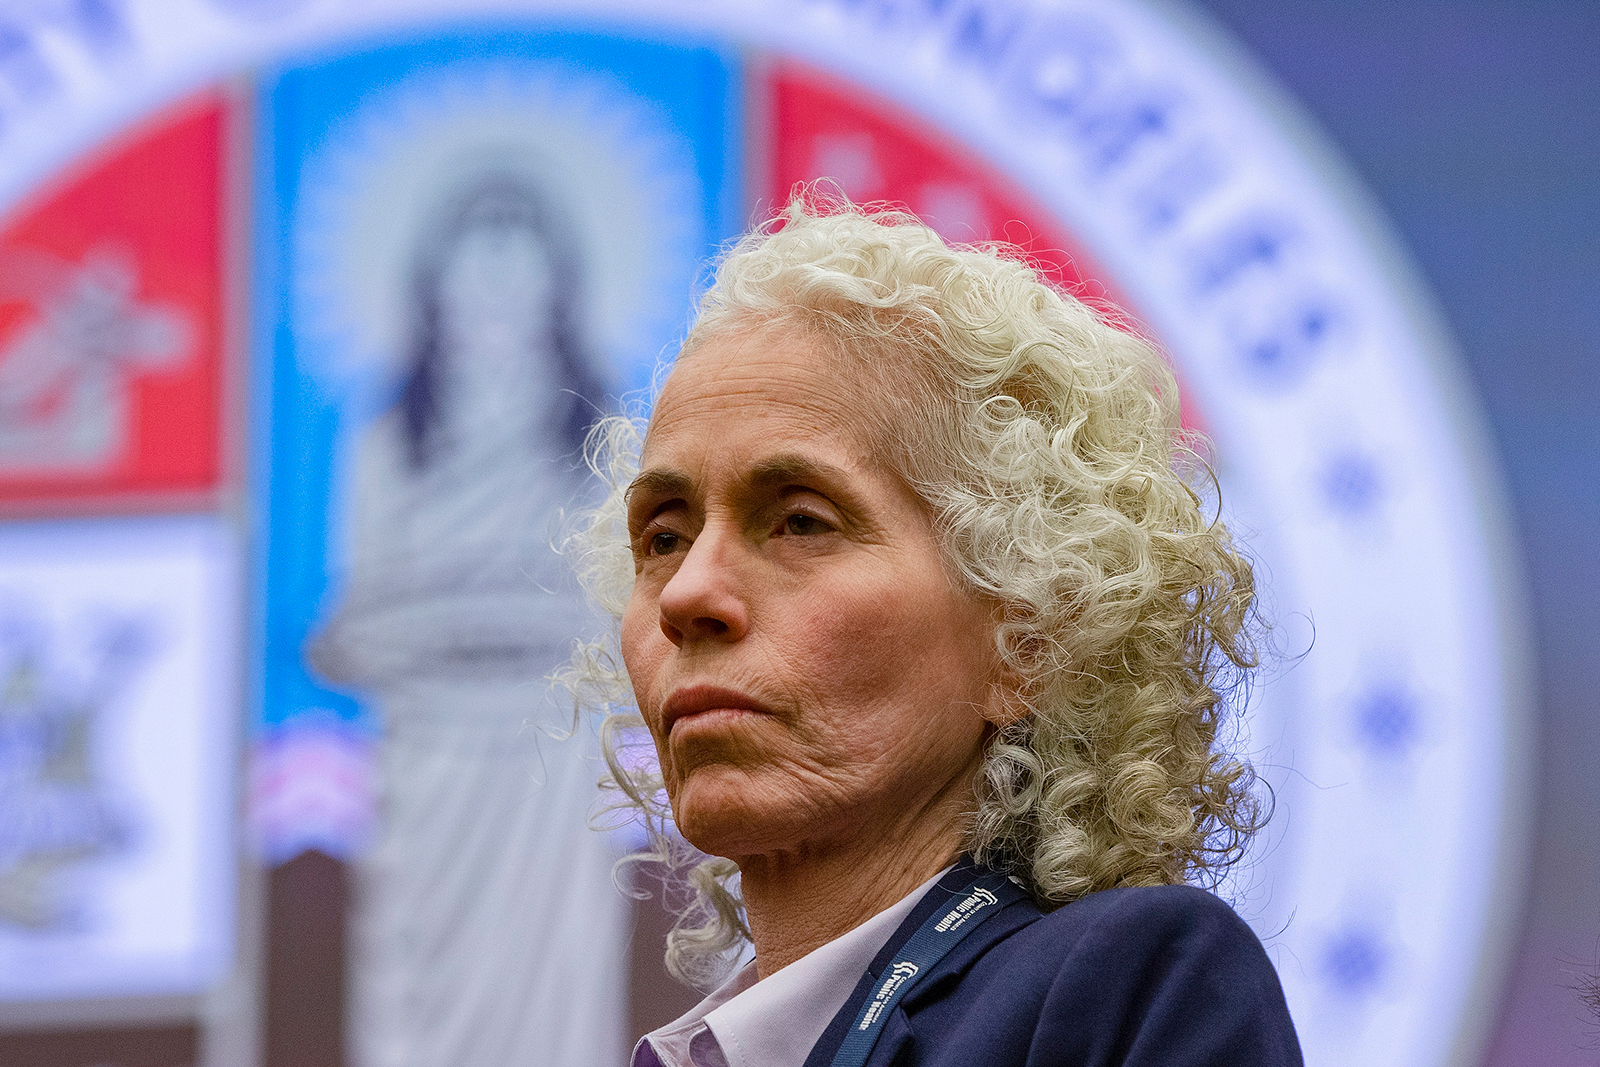 In this file photo, Los Angeles County Public Health Director Barbara Ferrer takes questions at a news conference in Los Angeles, on March, 12.